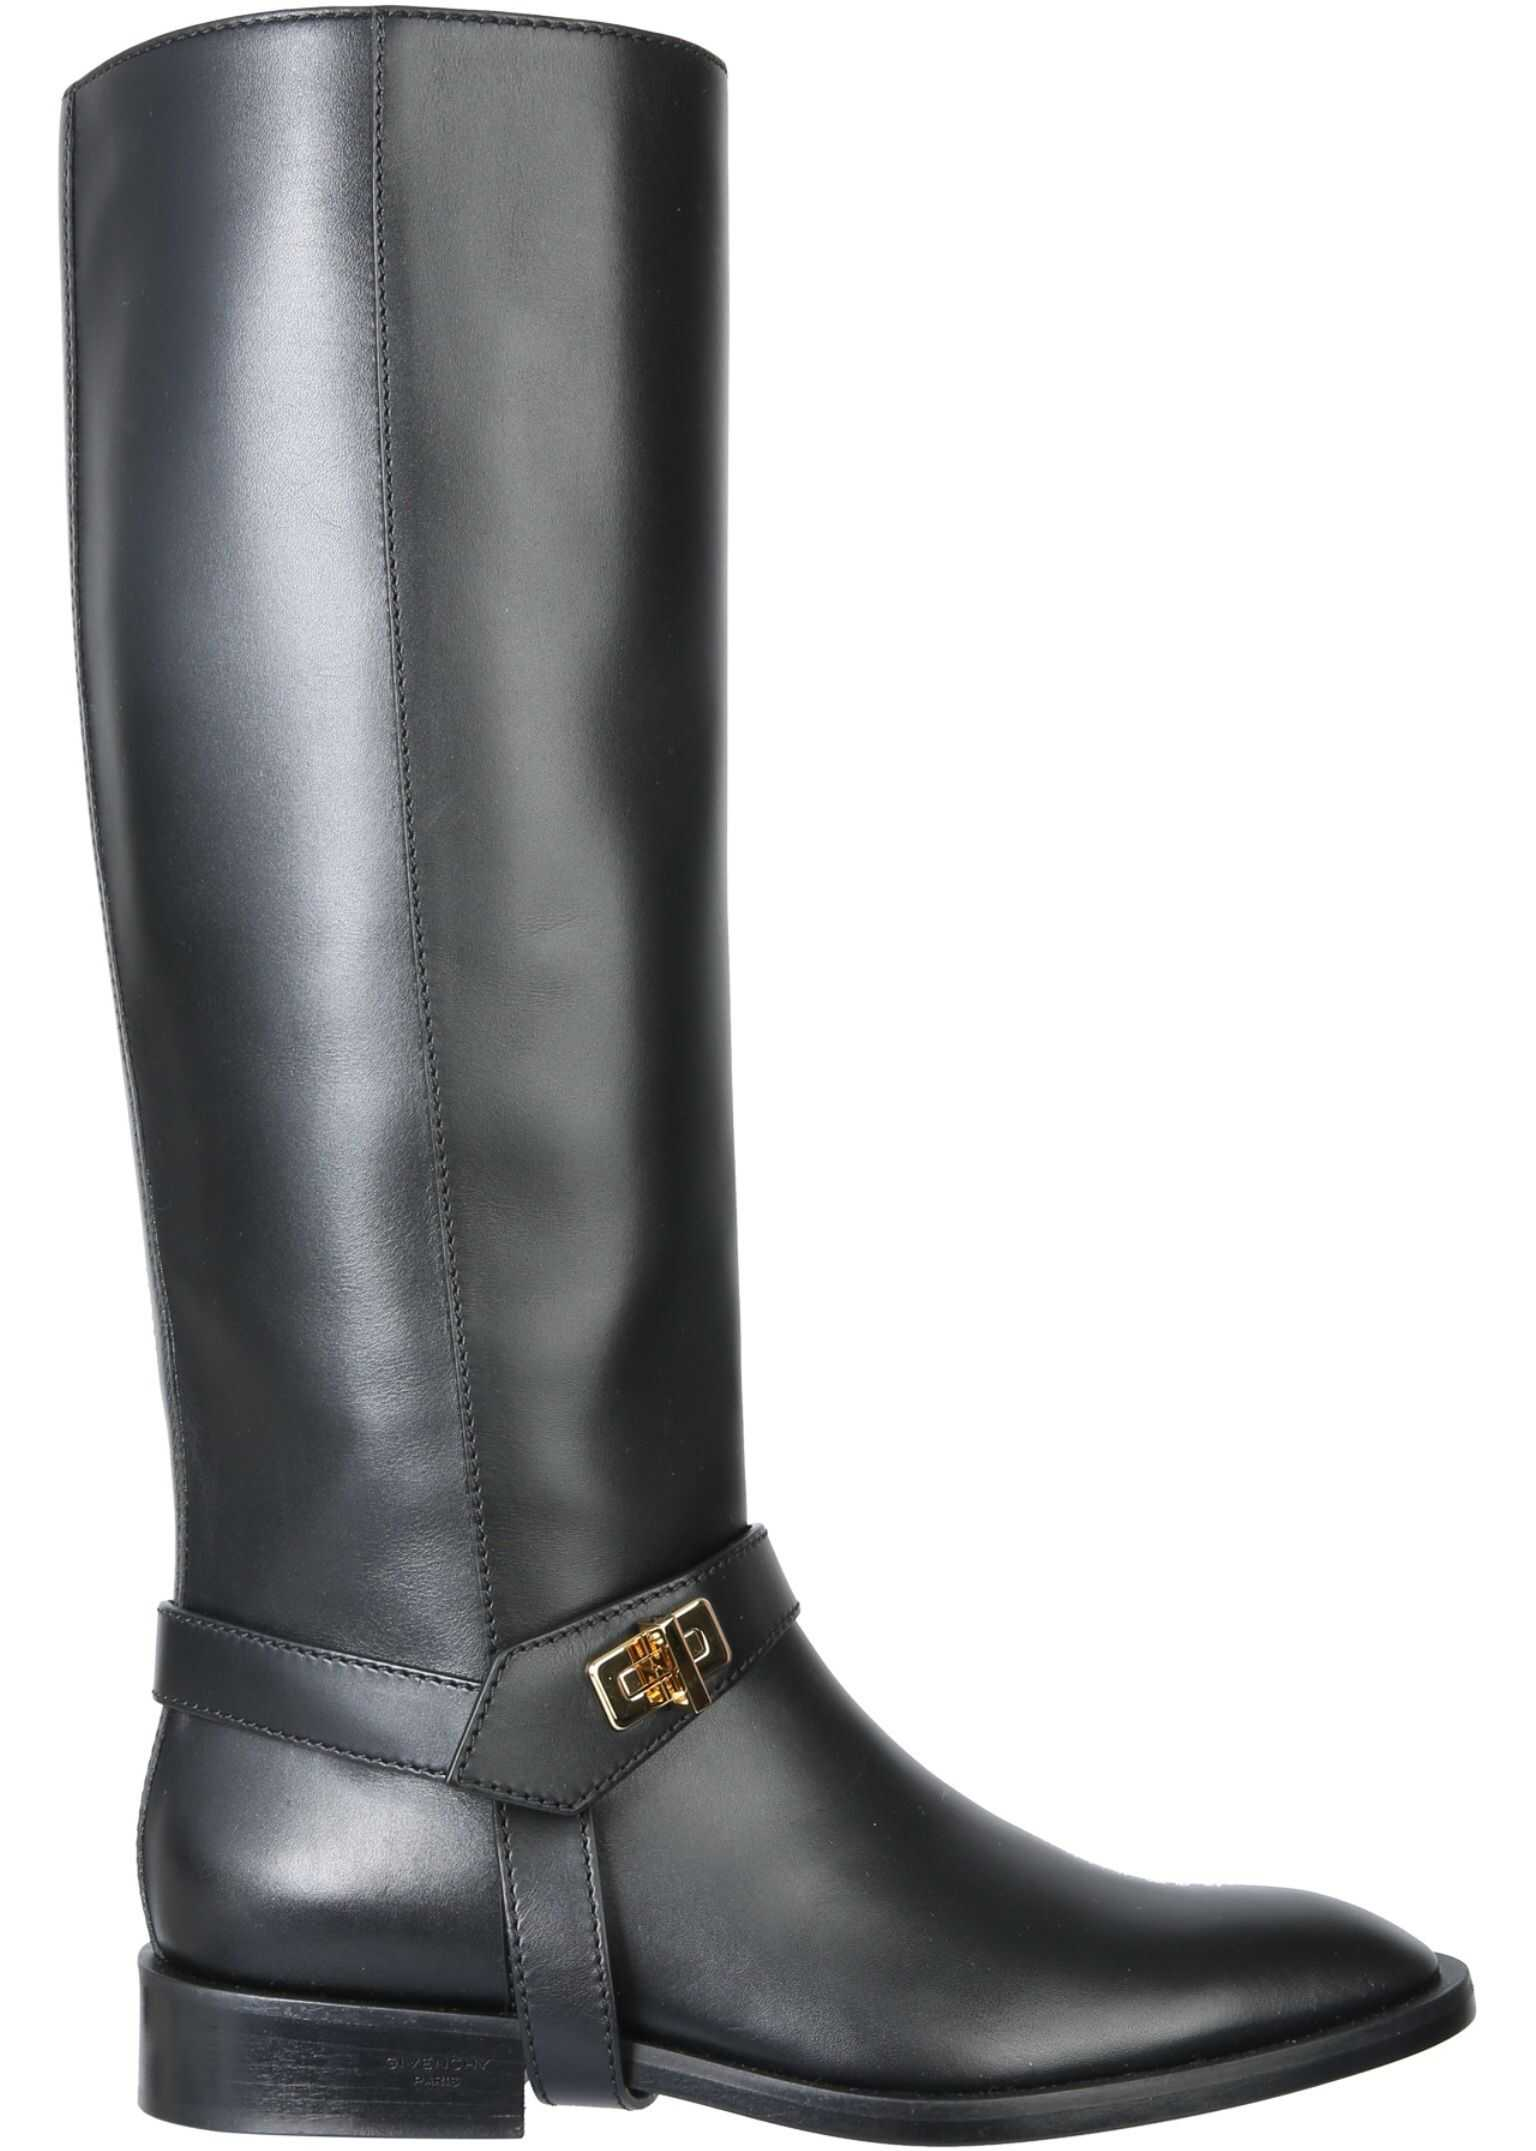 """Givenchy """"Eden"""" Boots BE701CE0LF_001 BLACK imagine b-mall.ro"""